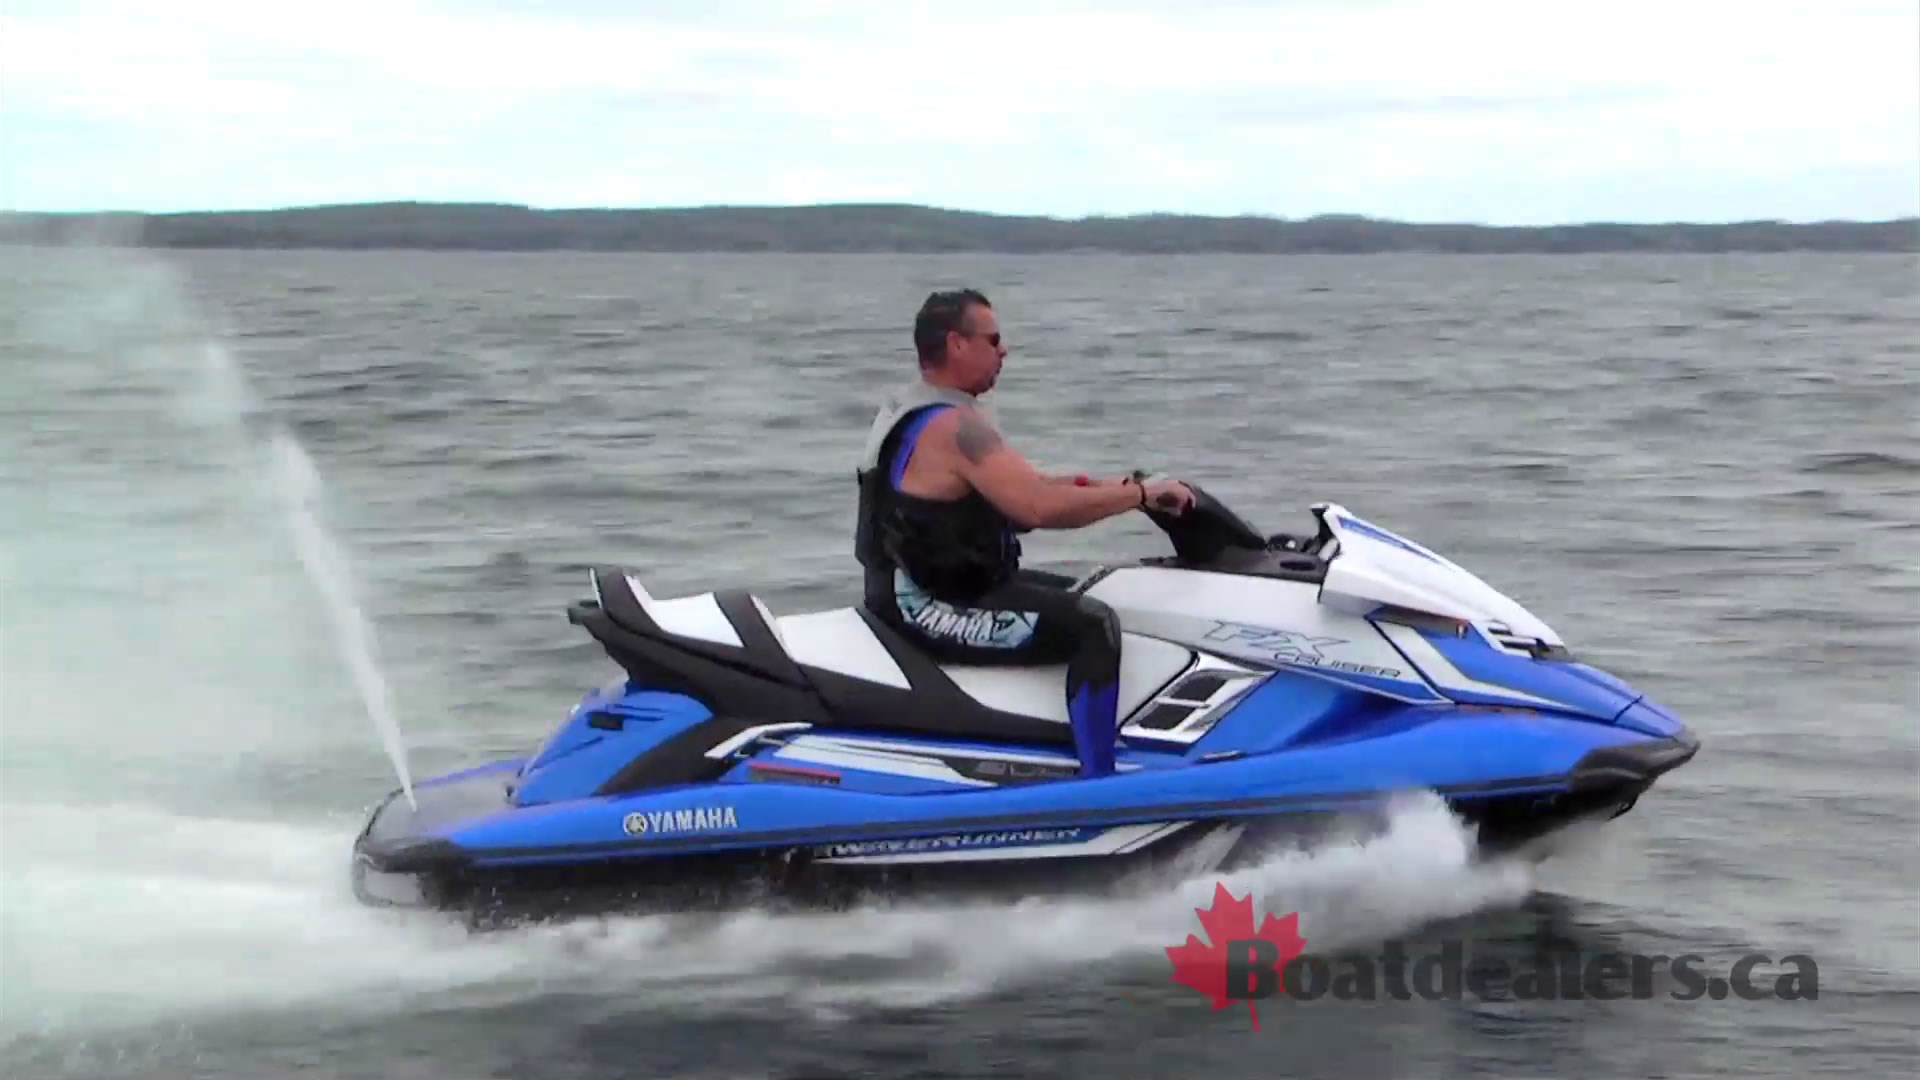 2018 Yamaha FX Cruiser SVHO Personal Water Craft Boat Review